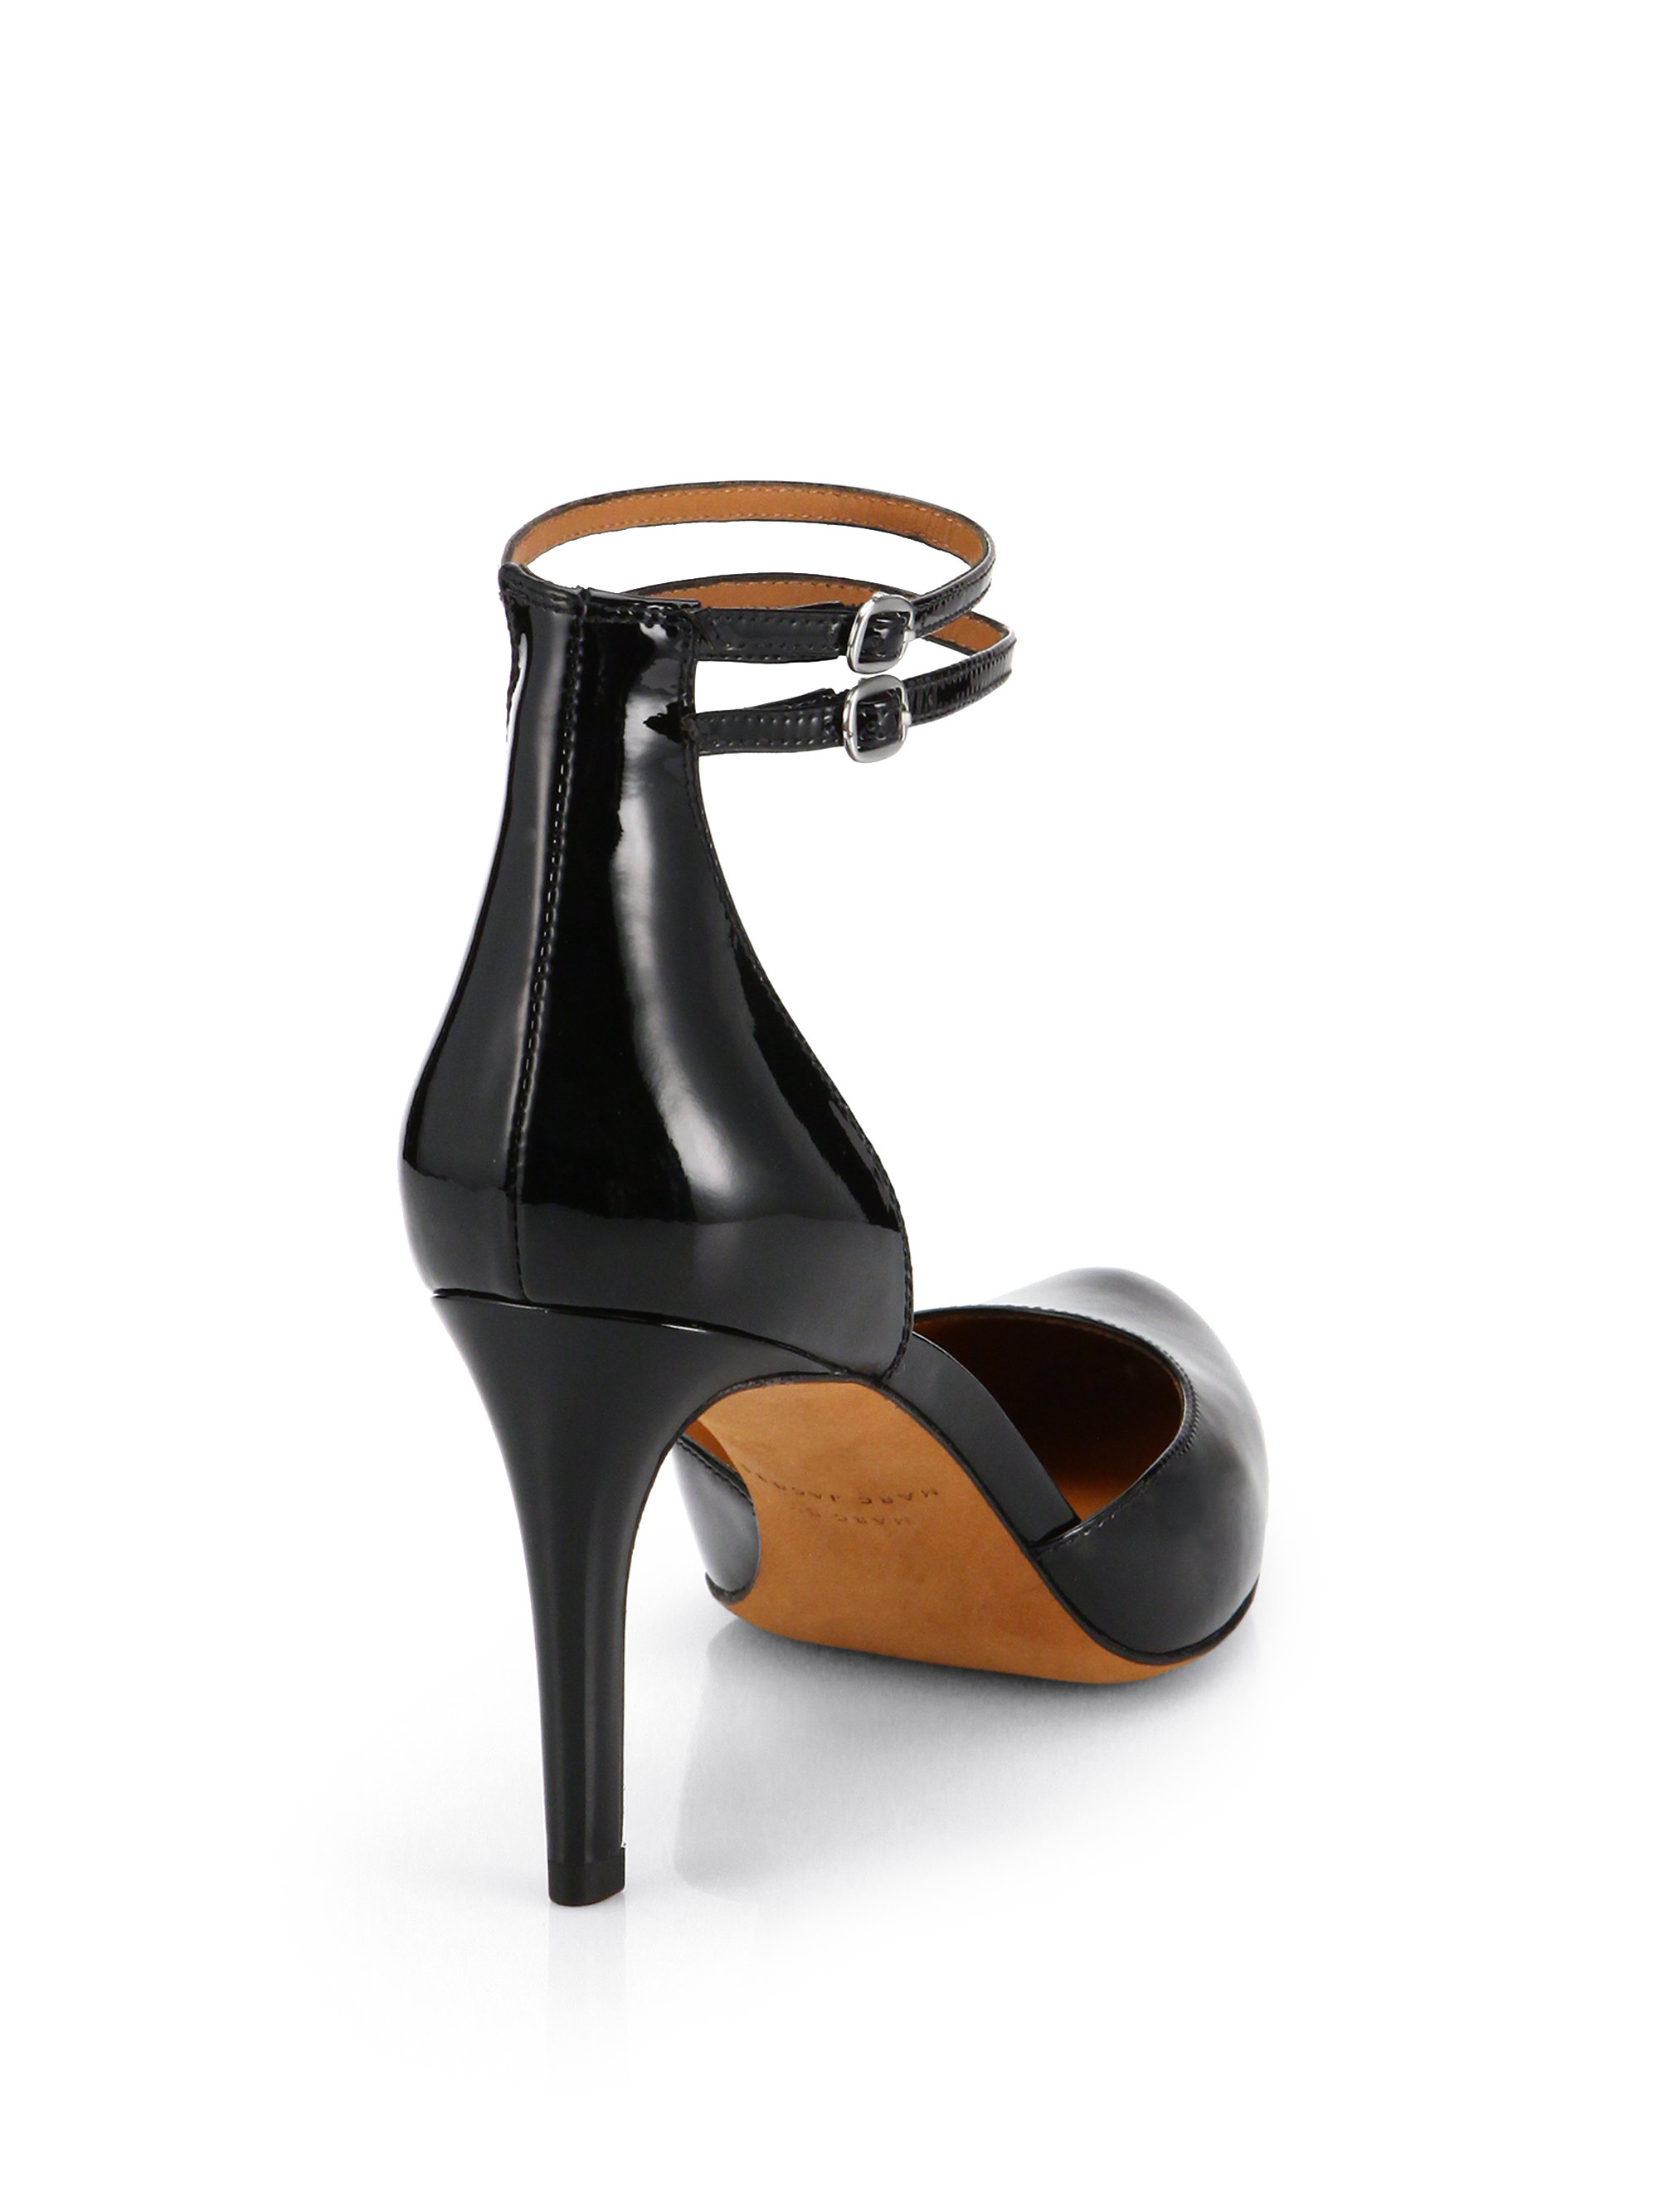 cheap new styles Marc by Marc Jacobs Leather Ankle Strap Sandals discount best prices cheap sale fast delivery sale low price jmkWxtuZl